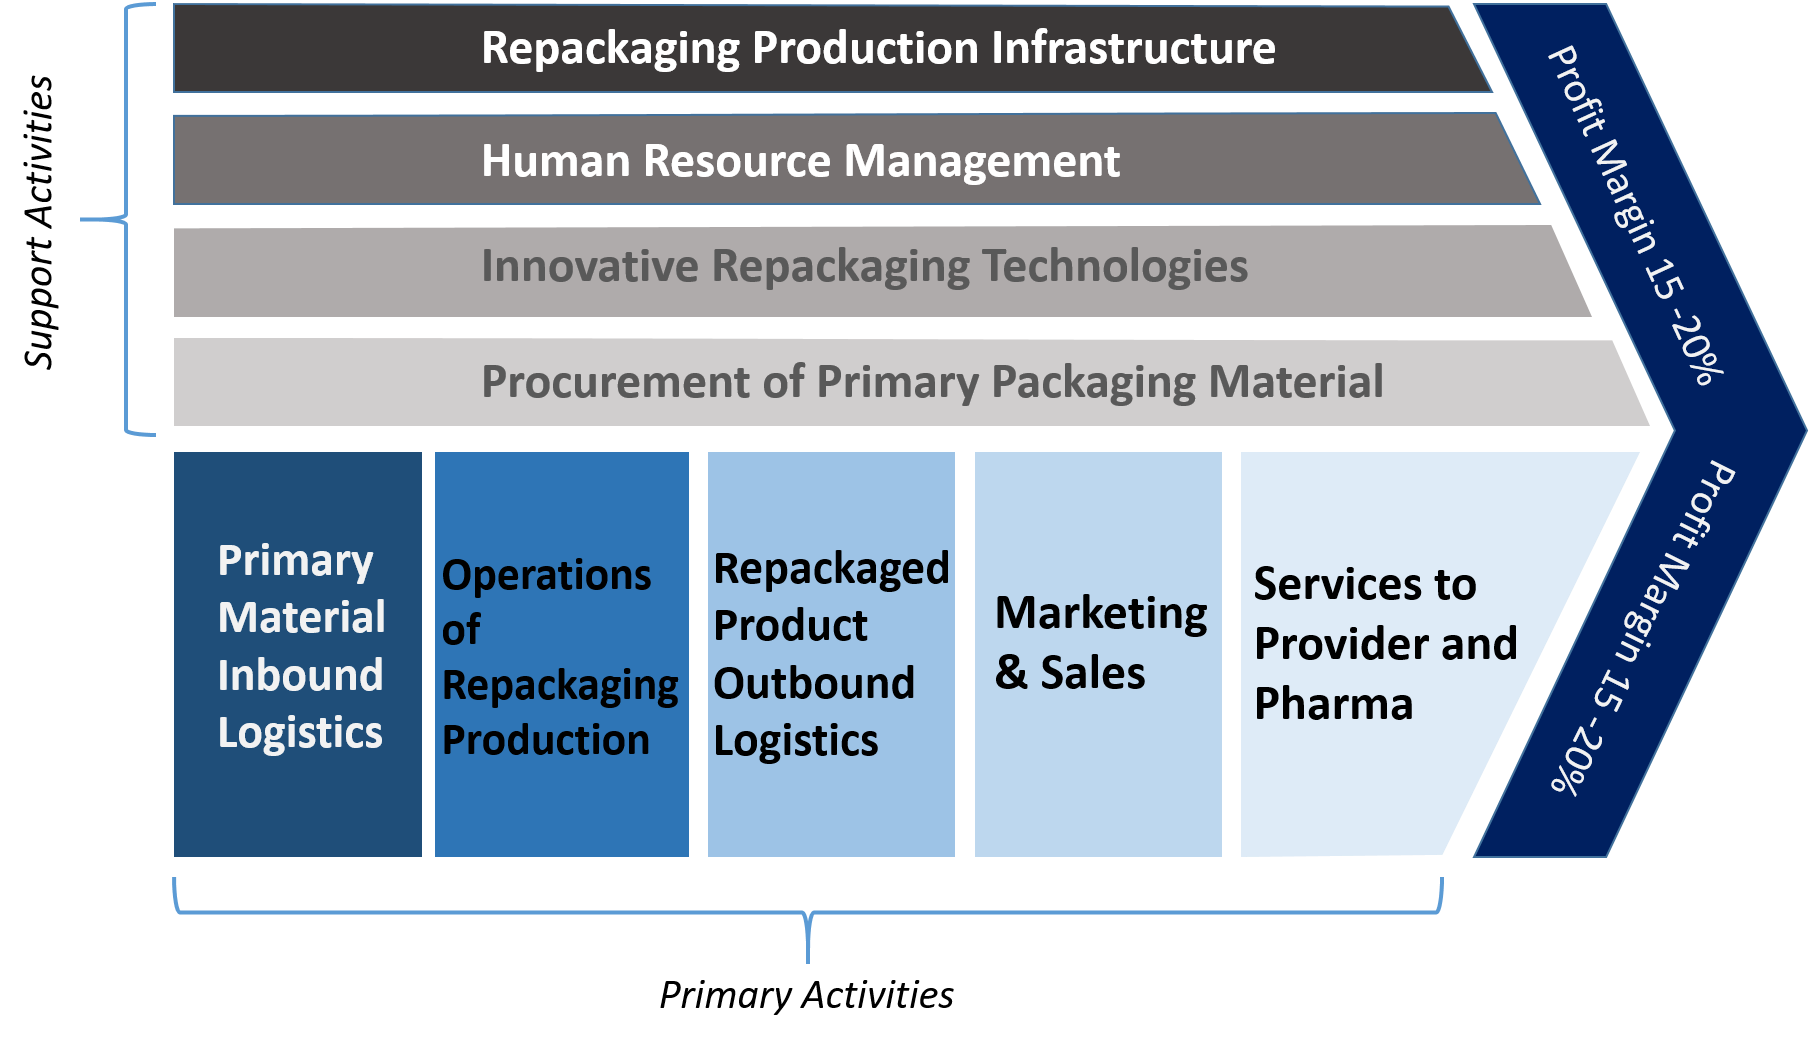 Pharmaceutical Repackaging – A Growth Market in Patient